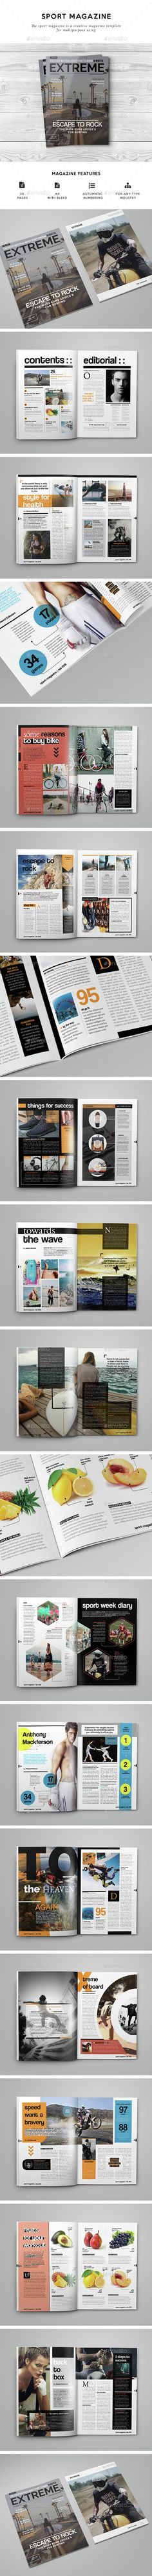 Sport Magazine  #sport template #template #travel • Available here → http://graphicriver.net/item/sport-magazine/14754930?s_rank=104&ref=pxcr